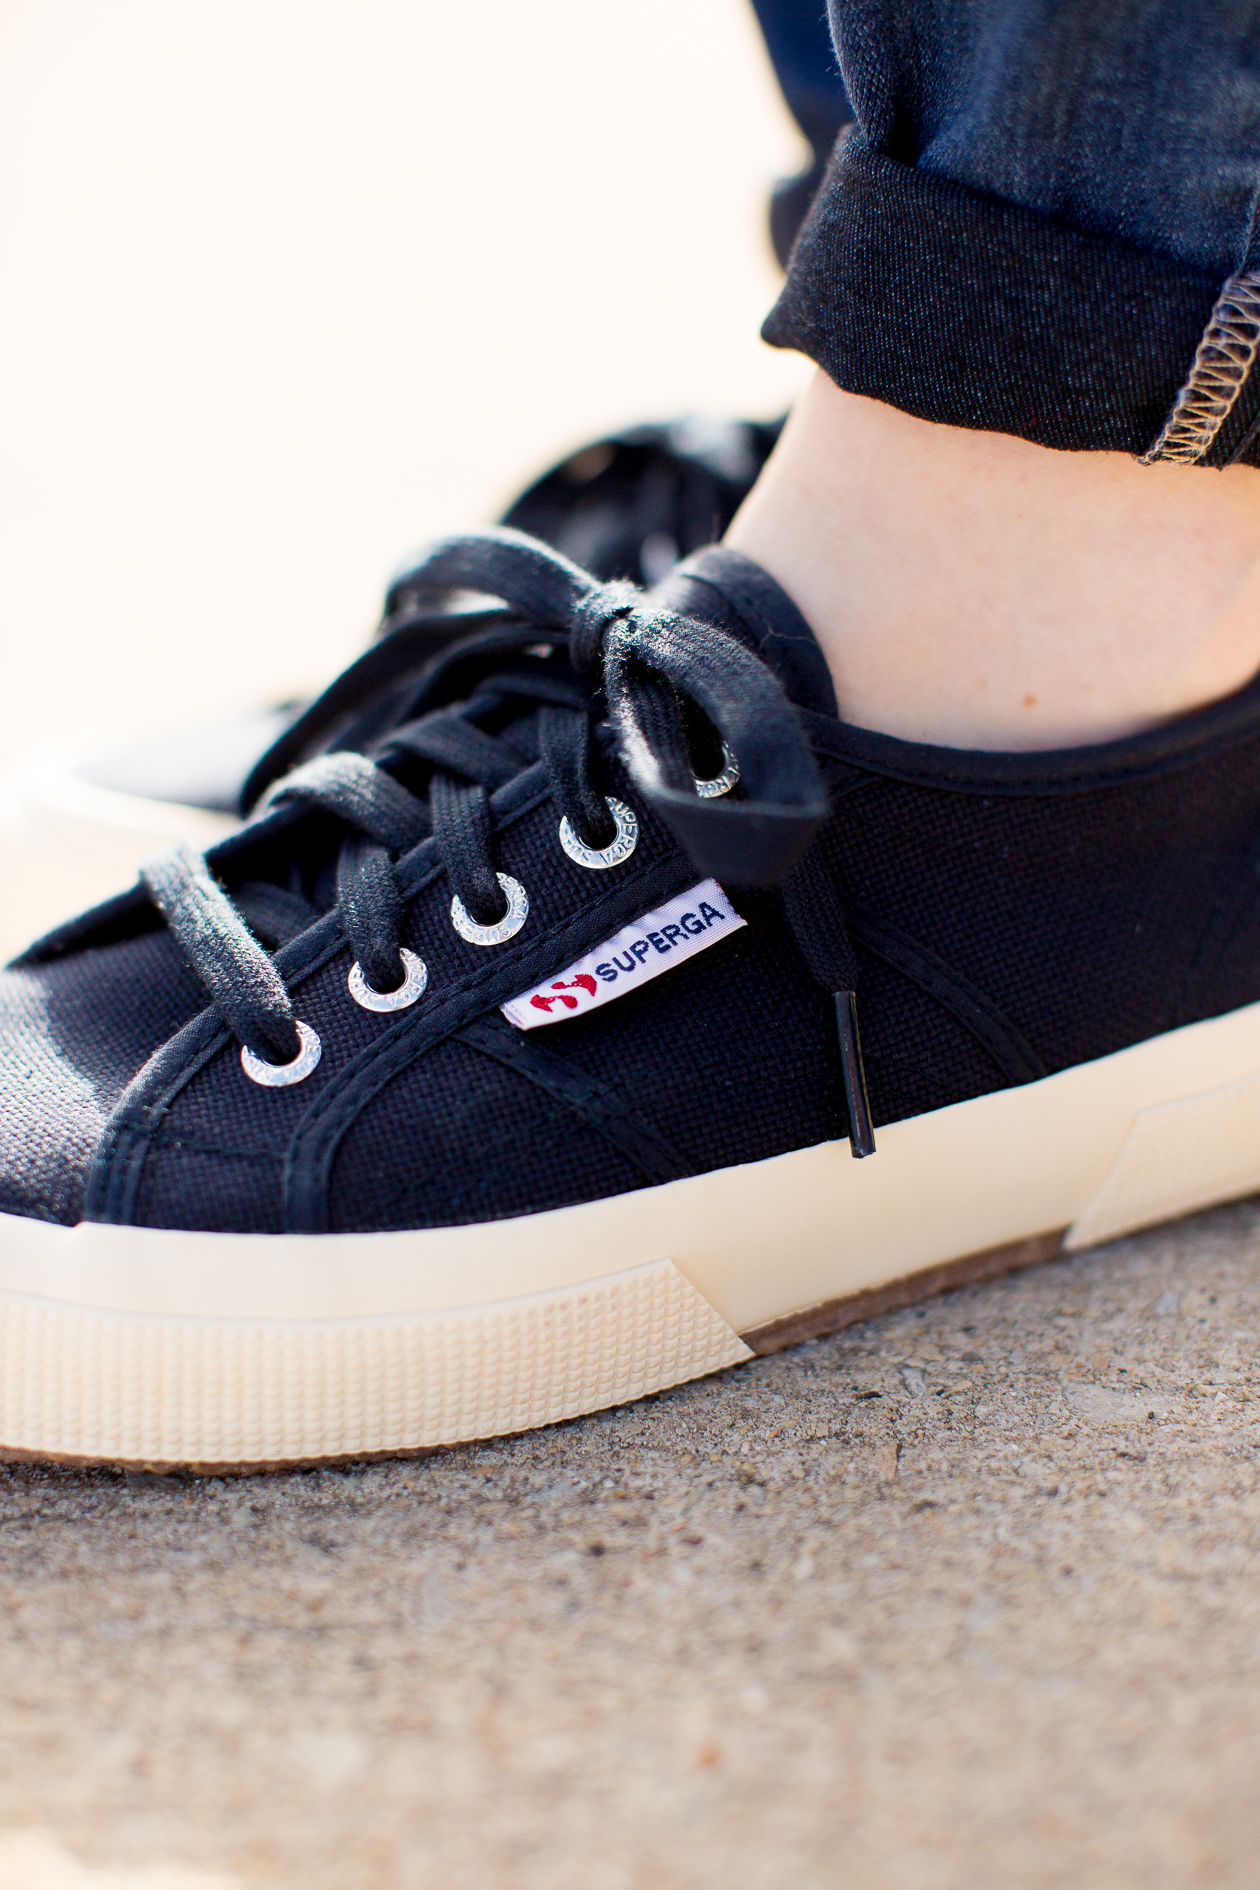 Superga Kelly in the City-57